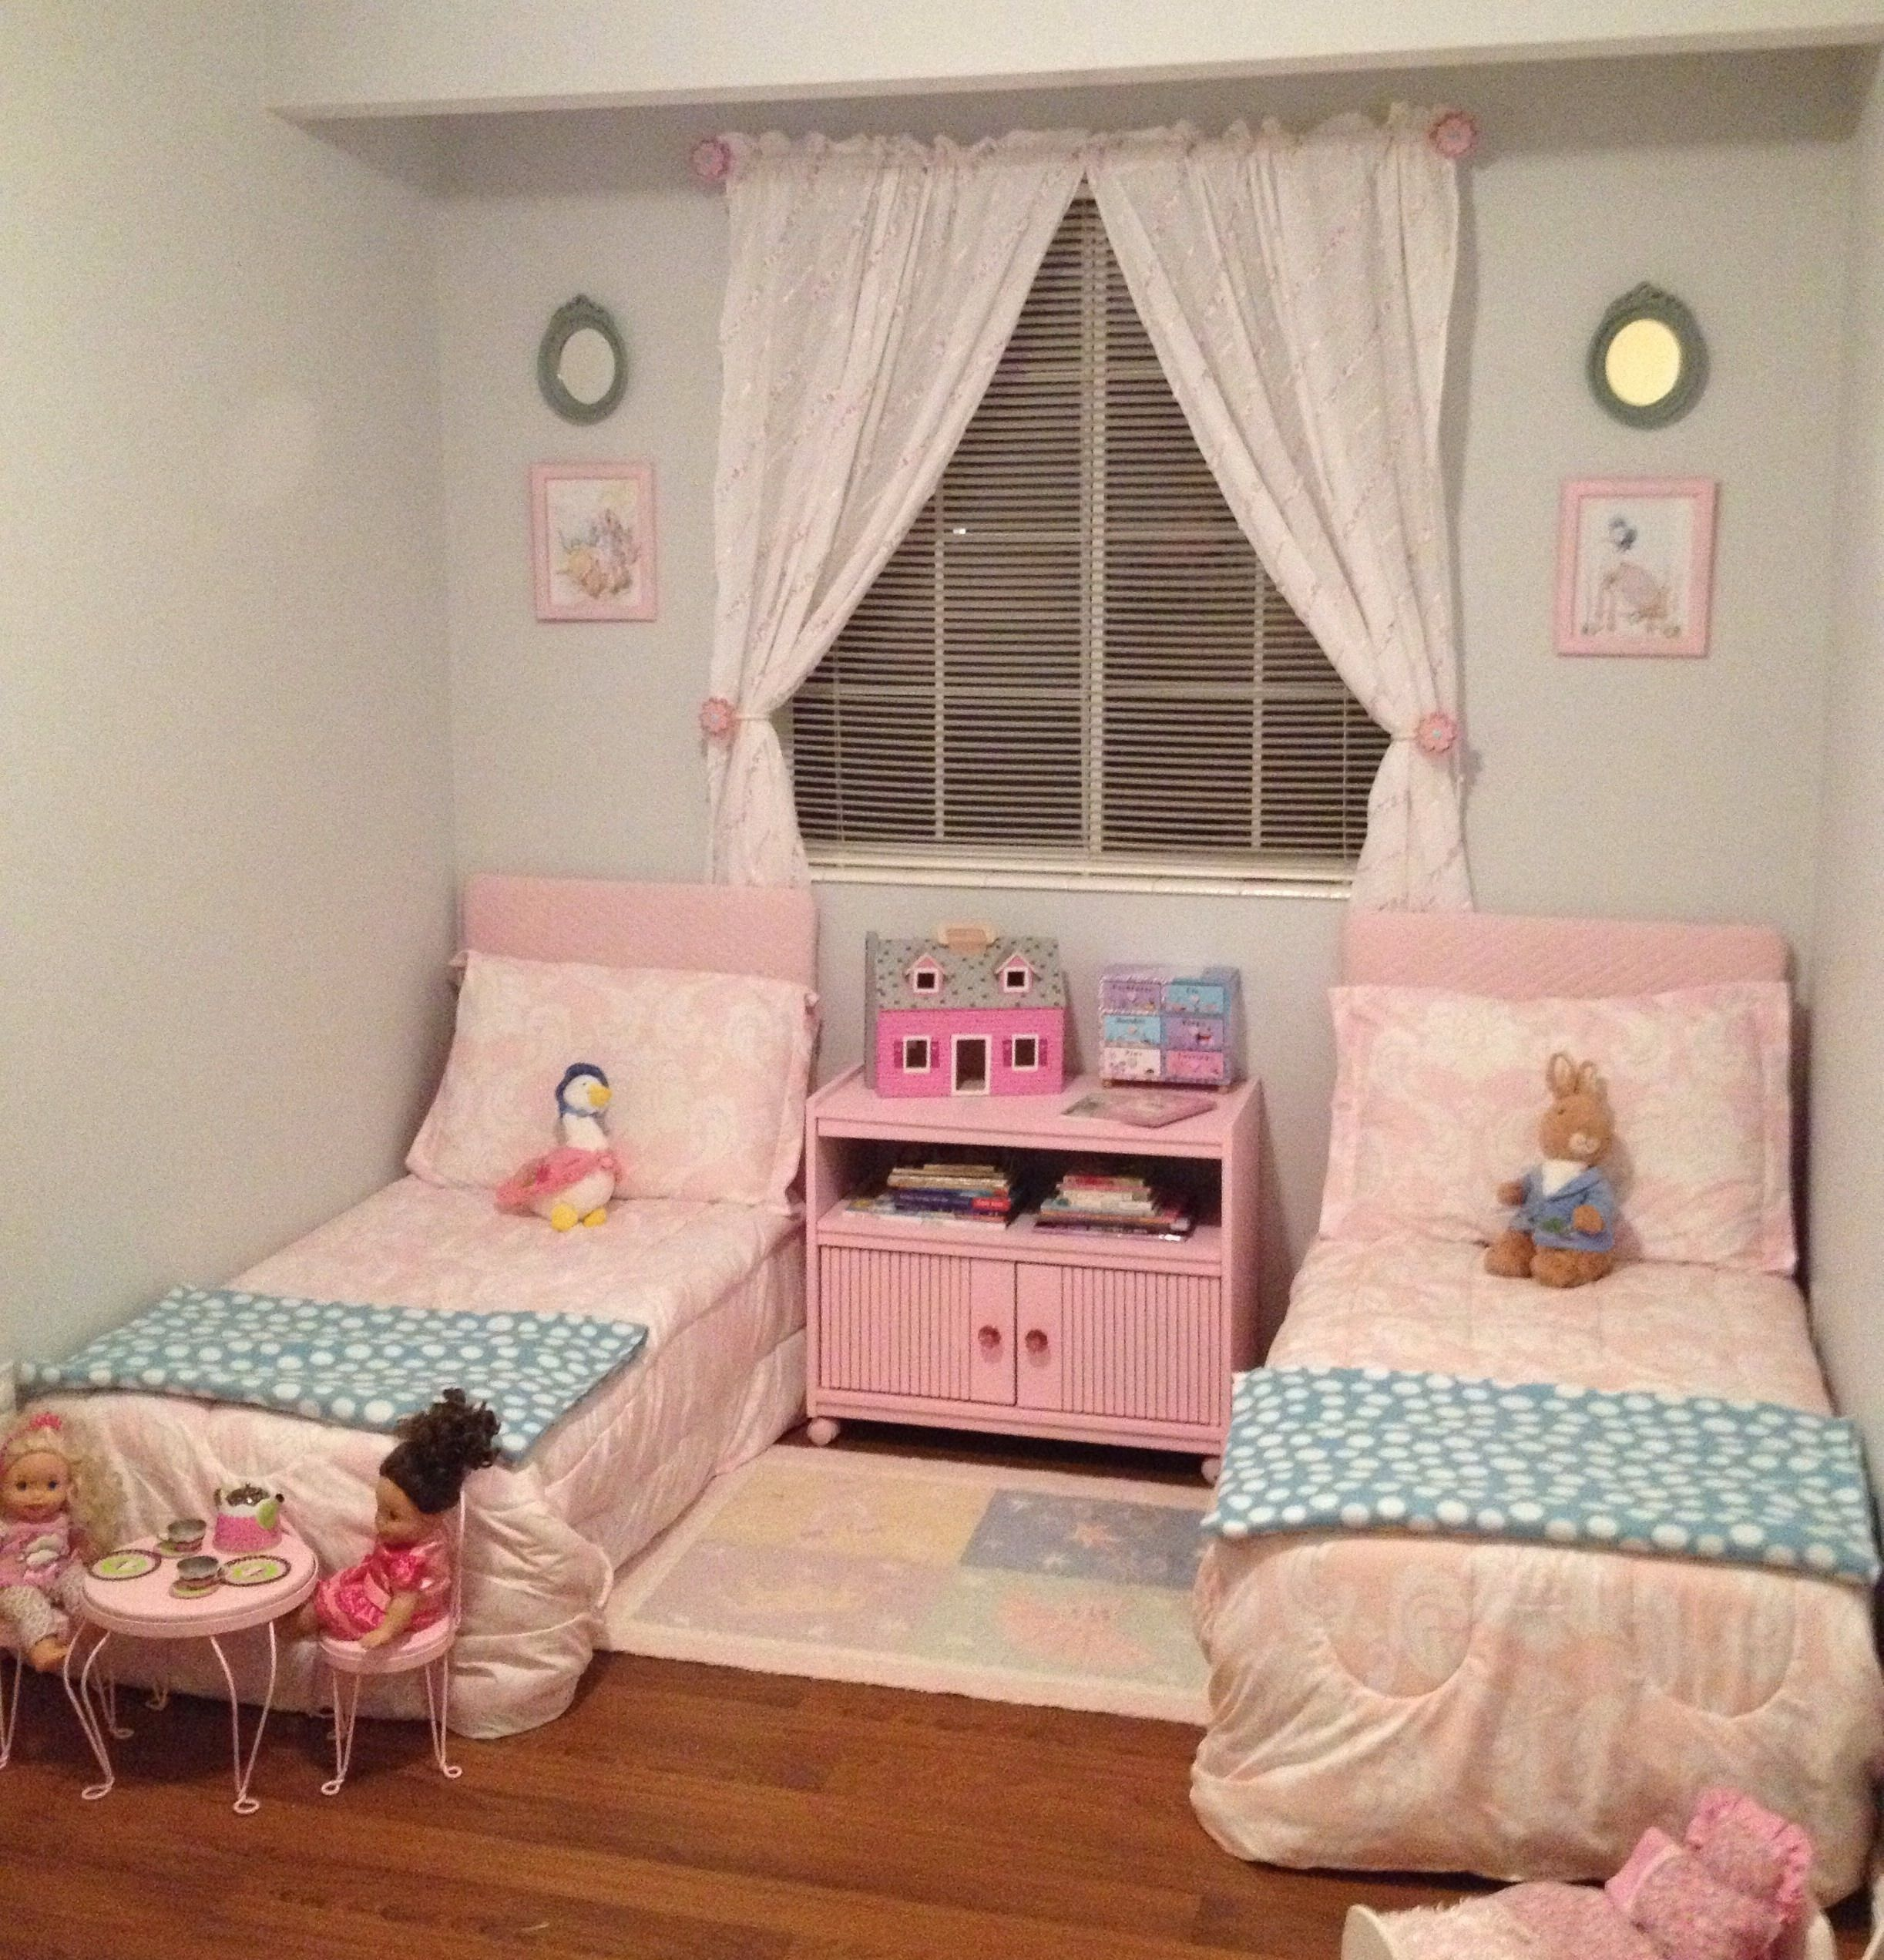 12 Classy Bedrooms Twin Beds Ideas For Small Rooms  Twin girl